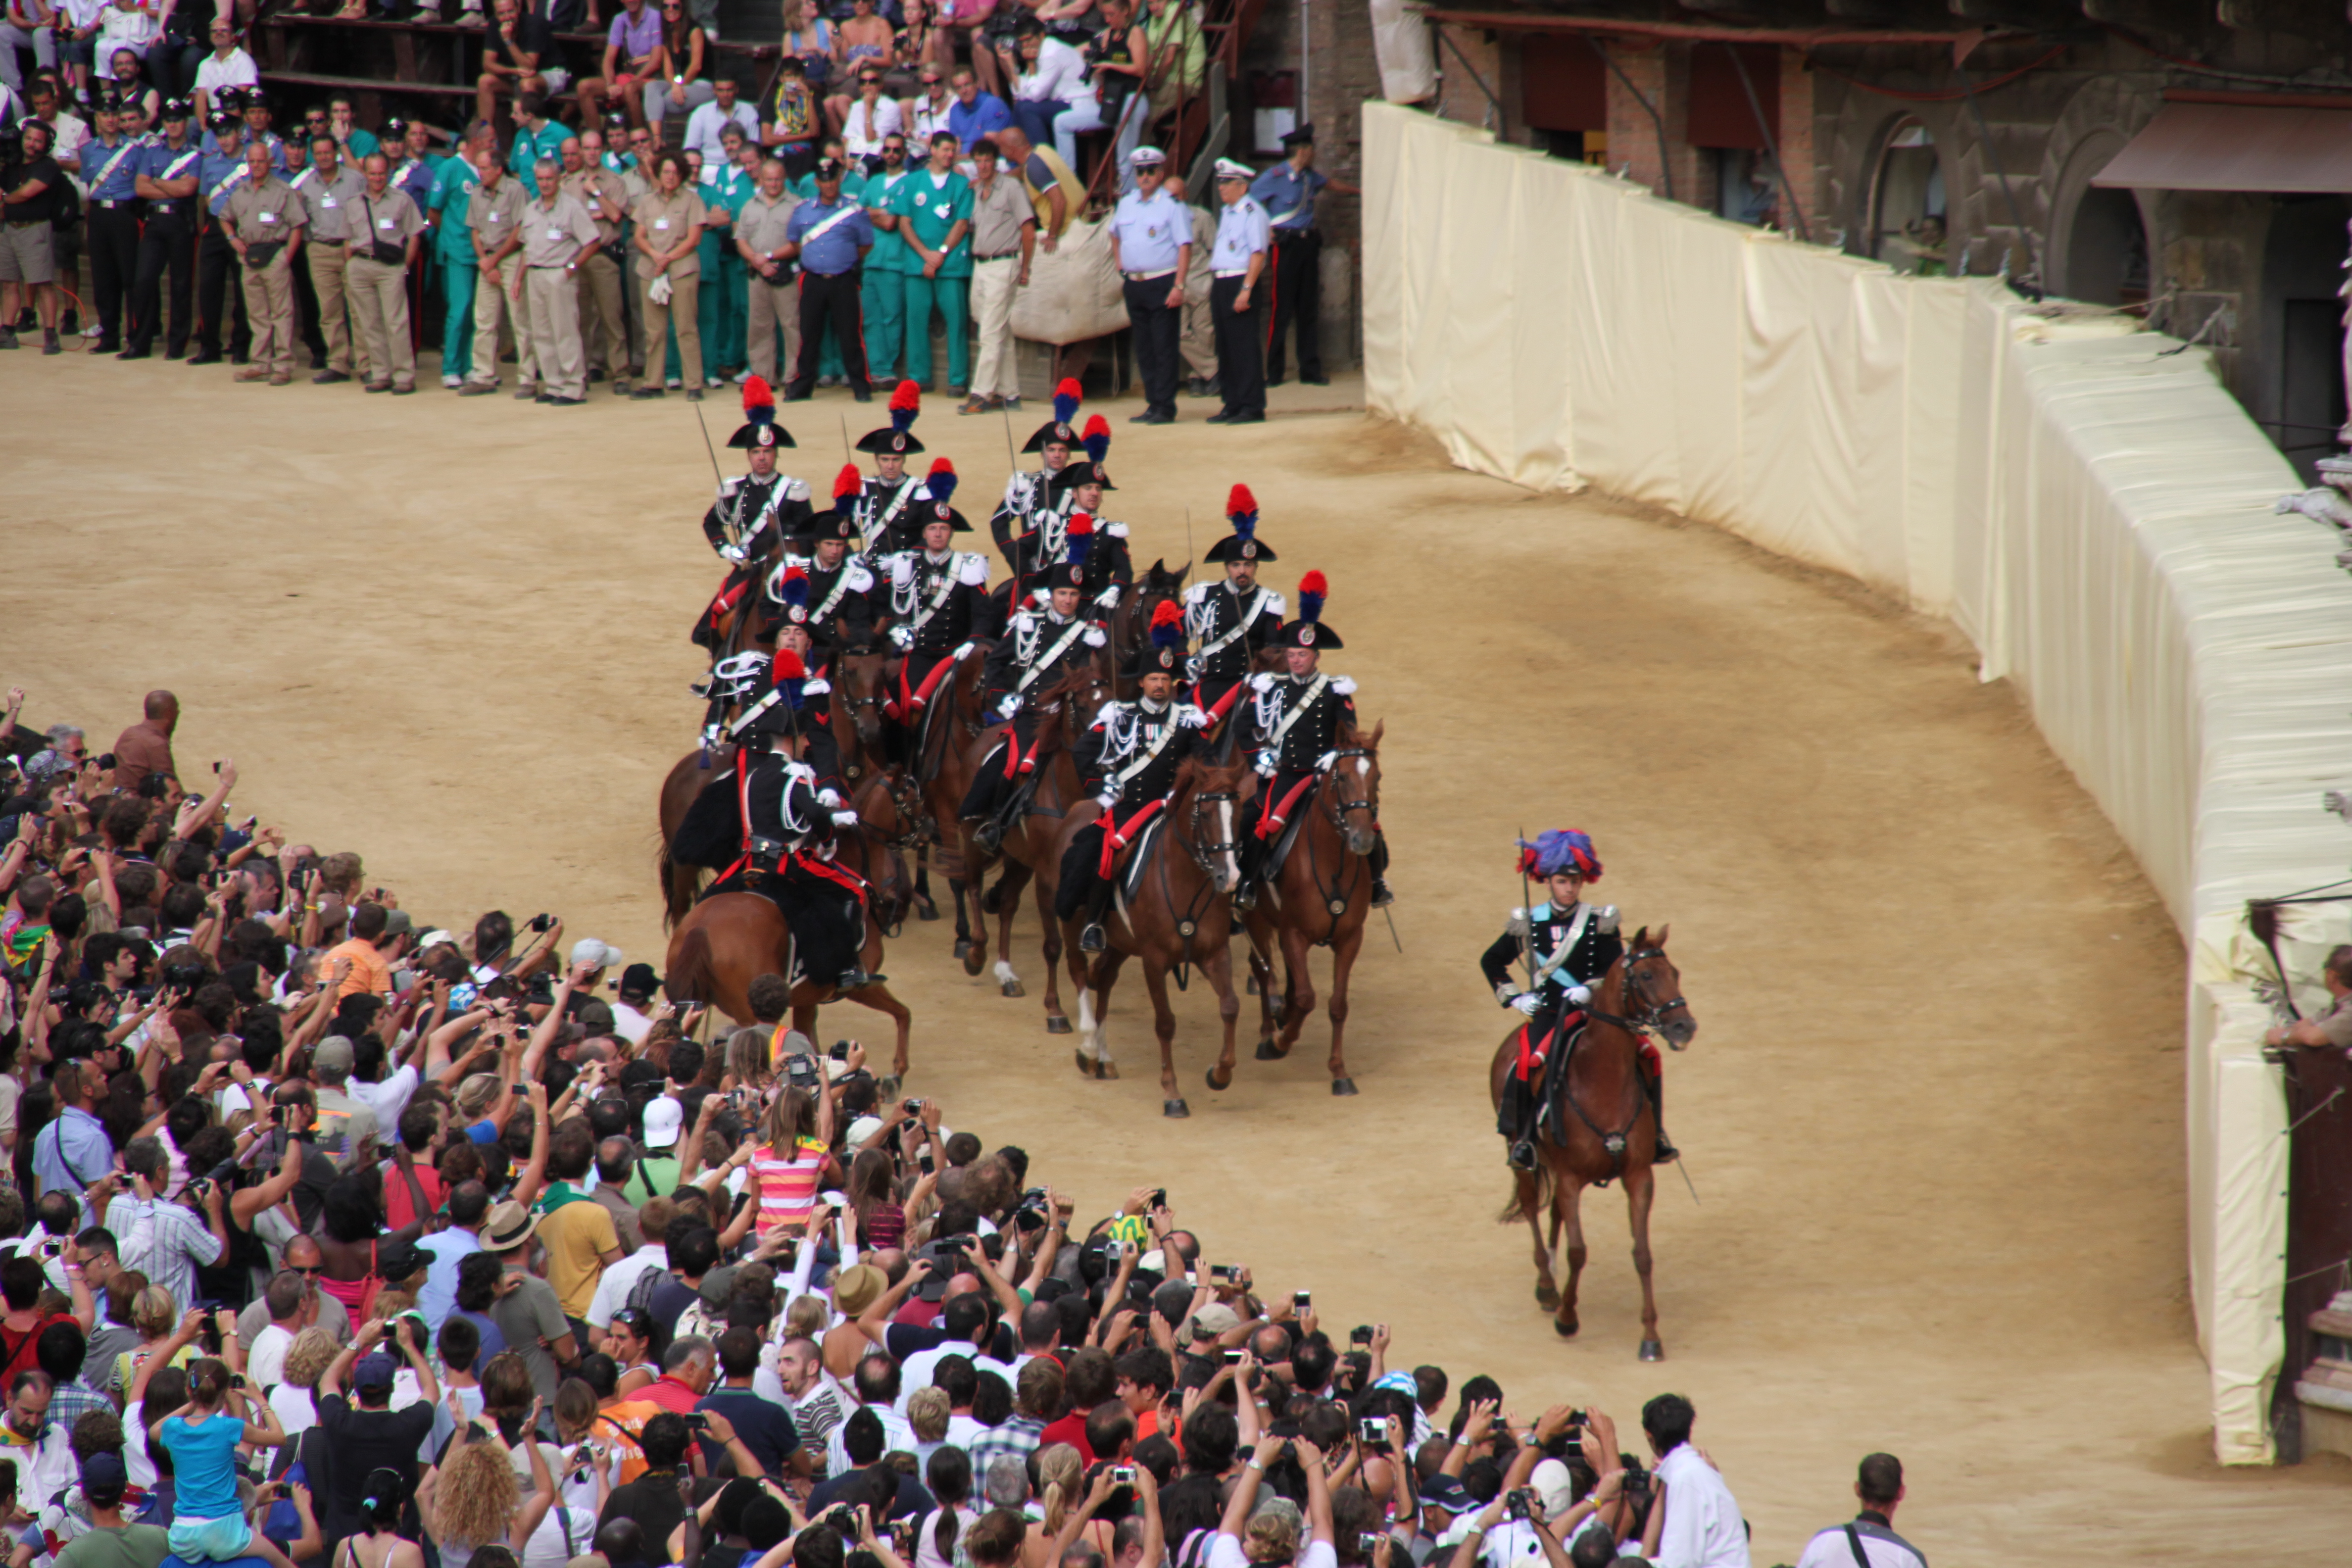 Photo of the horseback cavalry arrives and circuits the race track at a gallop